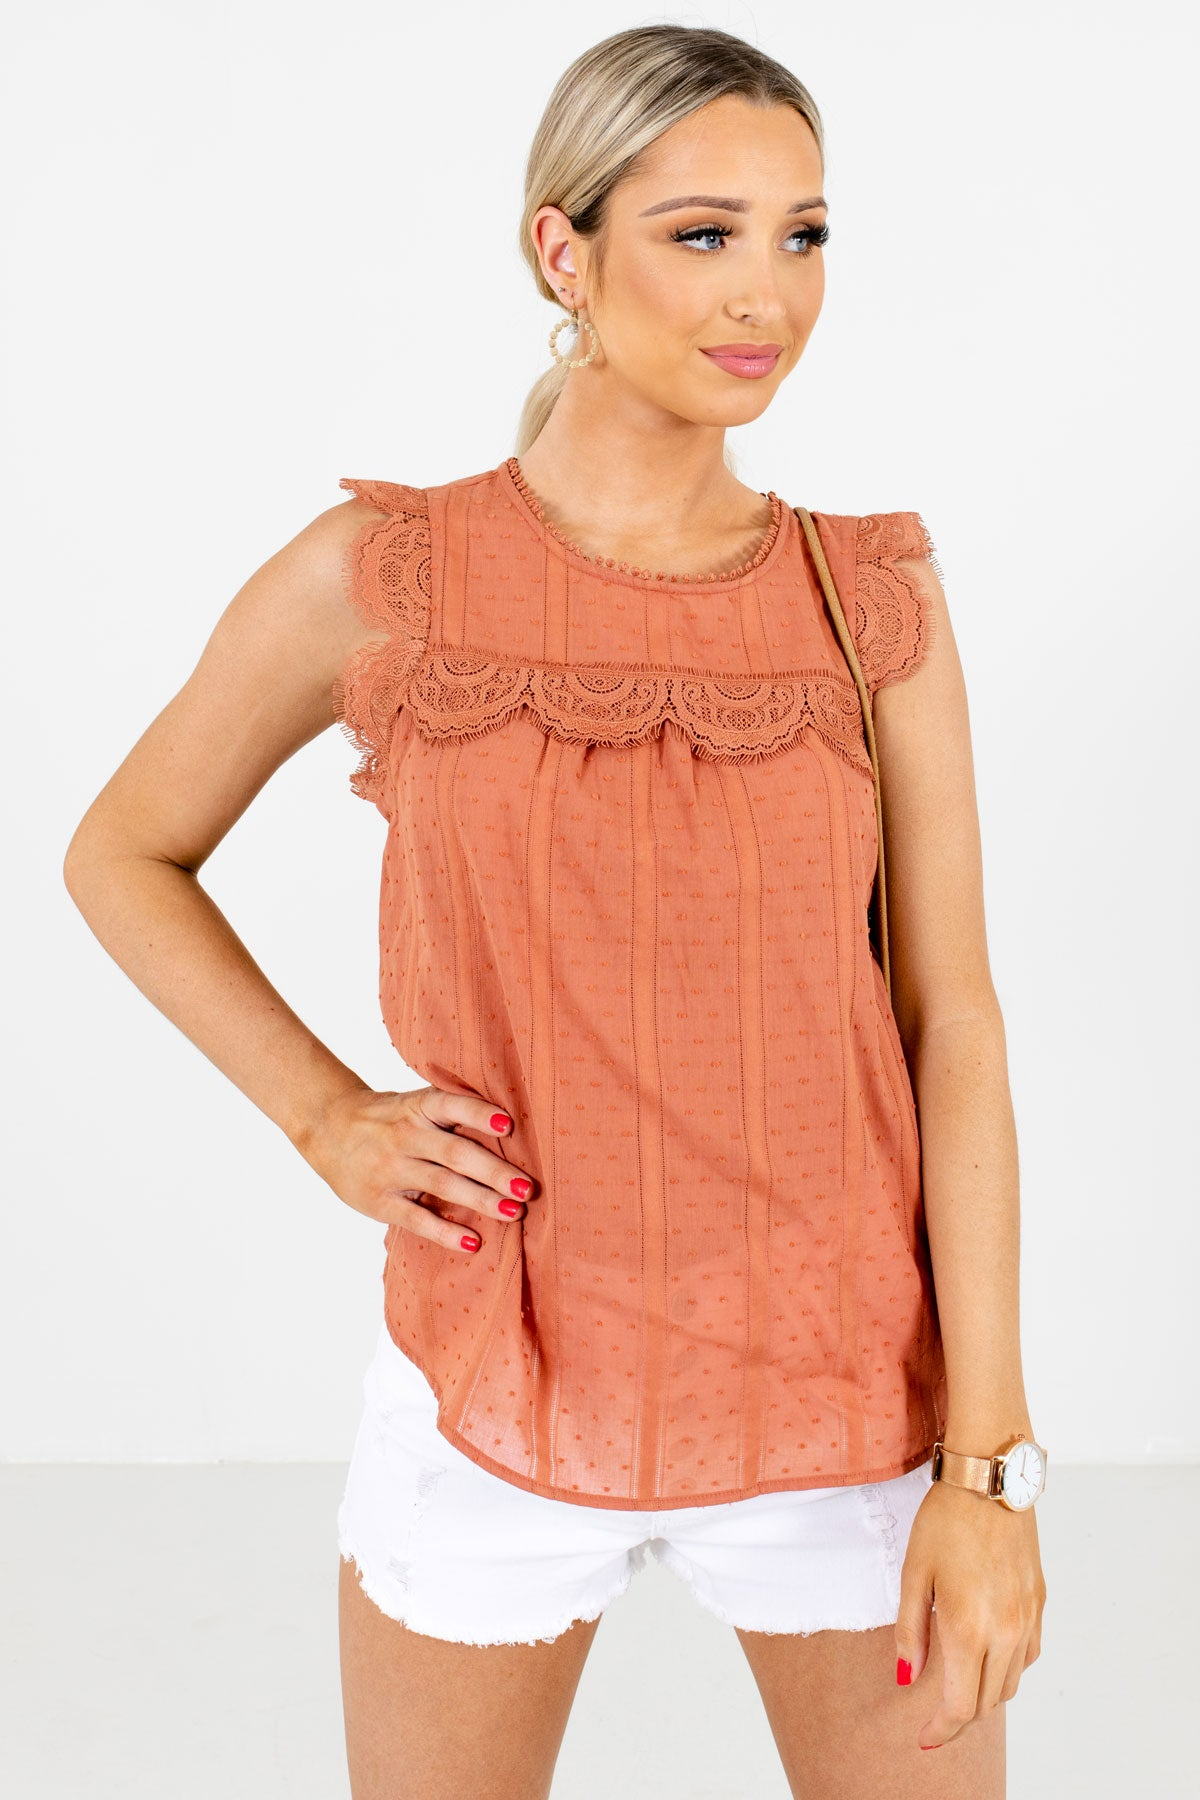 Orange Lace Detailed Boutique Tank Tops for Women